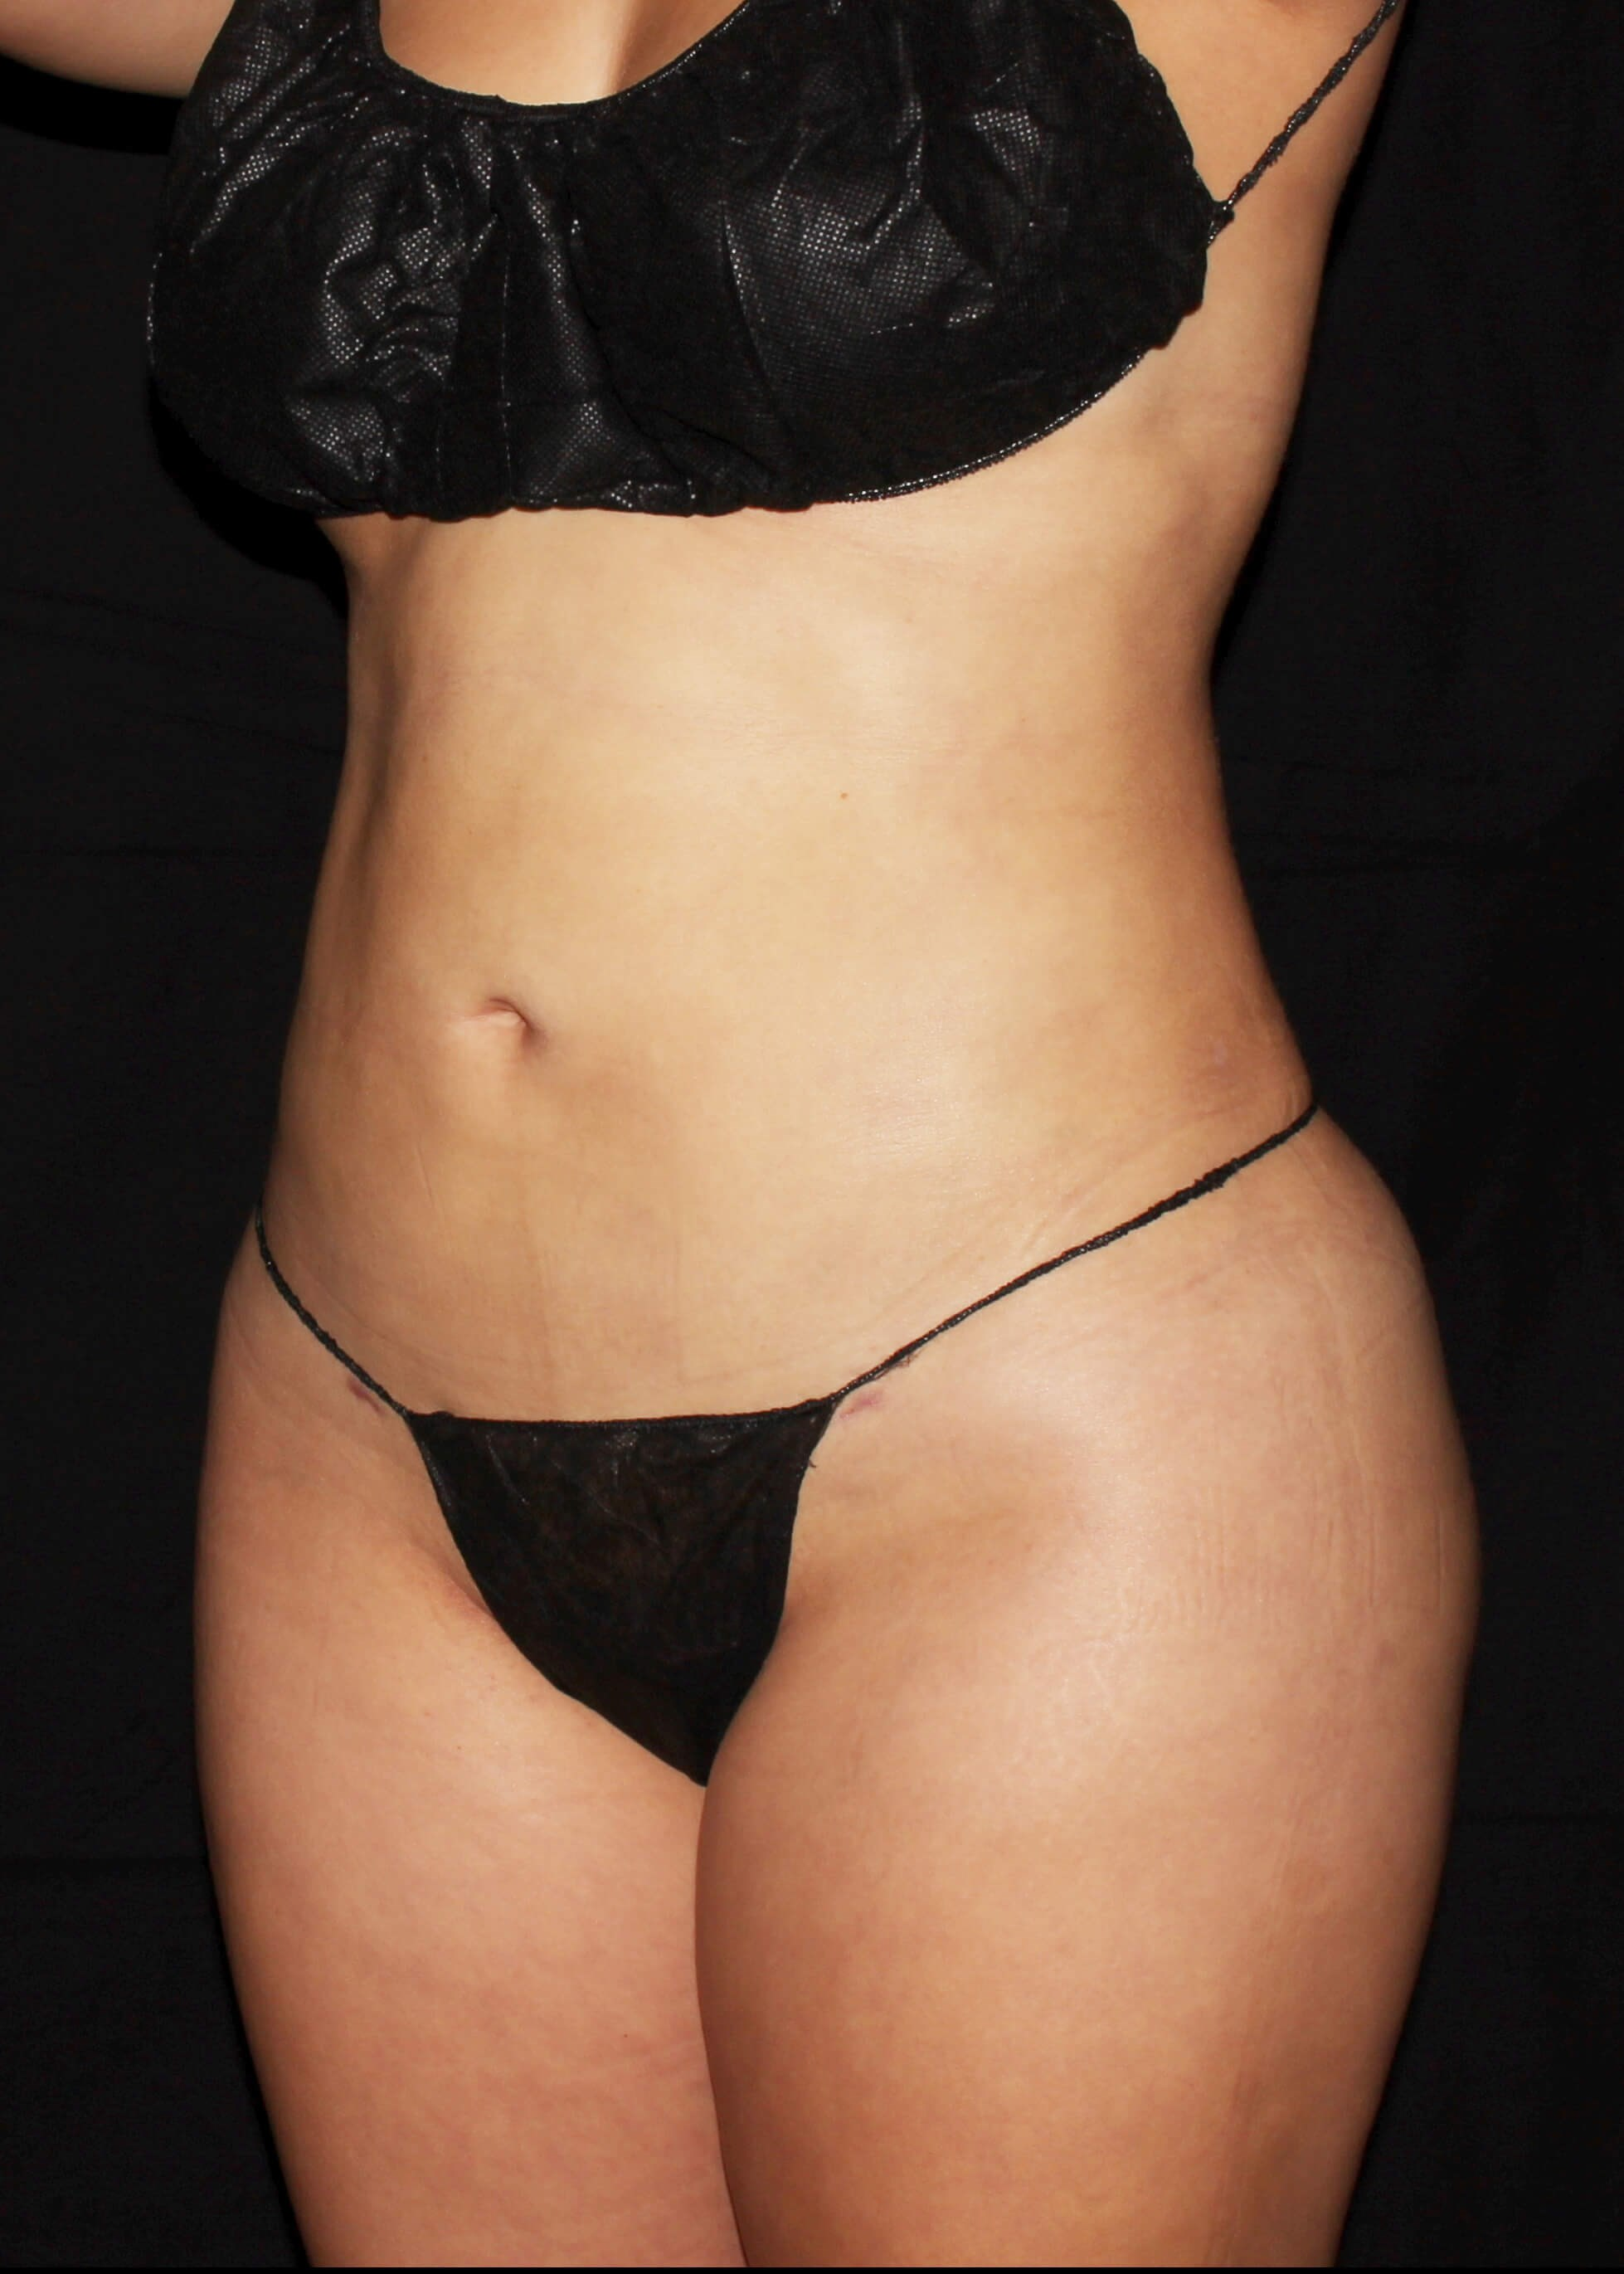 Full Torso Liposuction After - LEFT FRONT SIDE VIEW